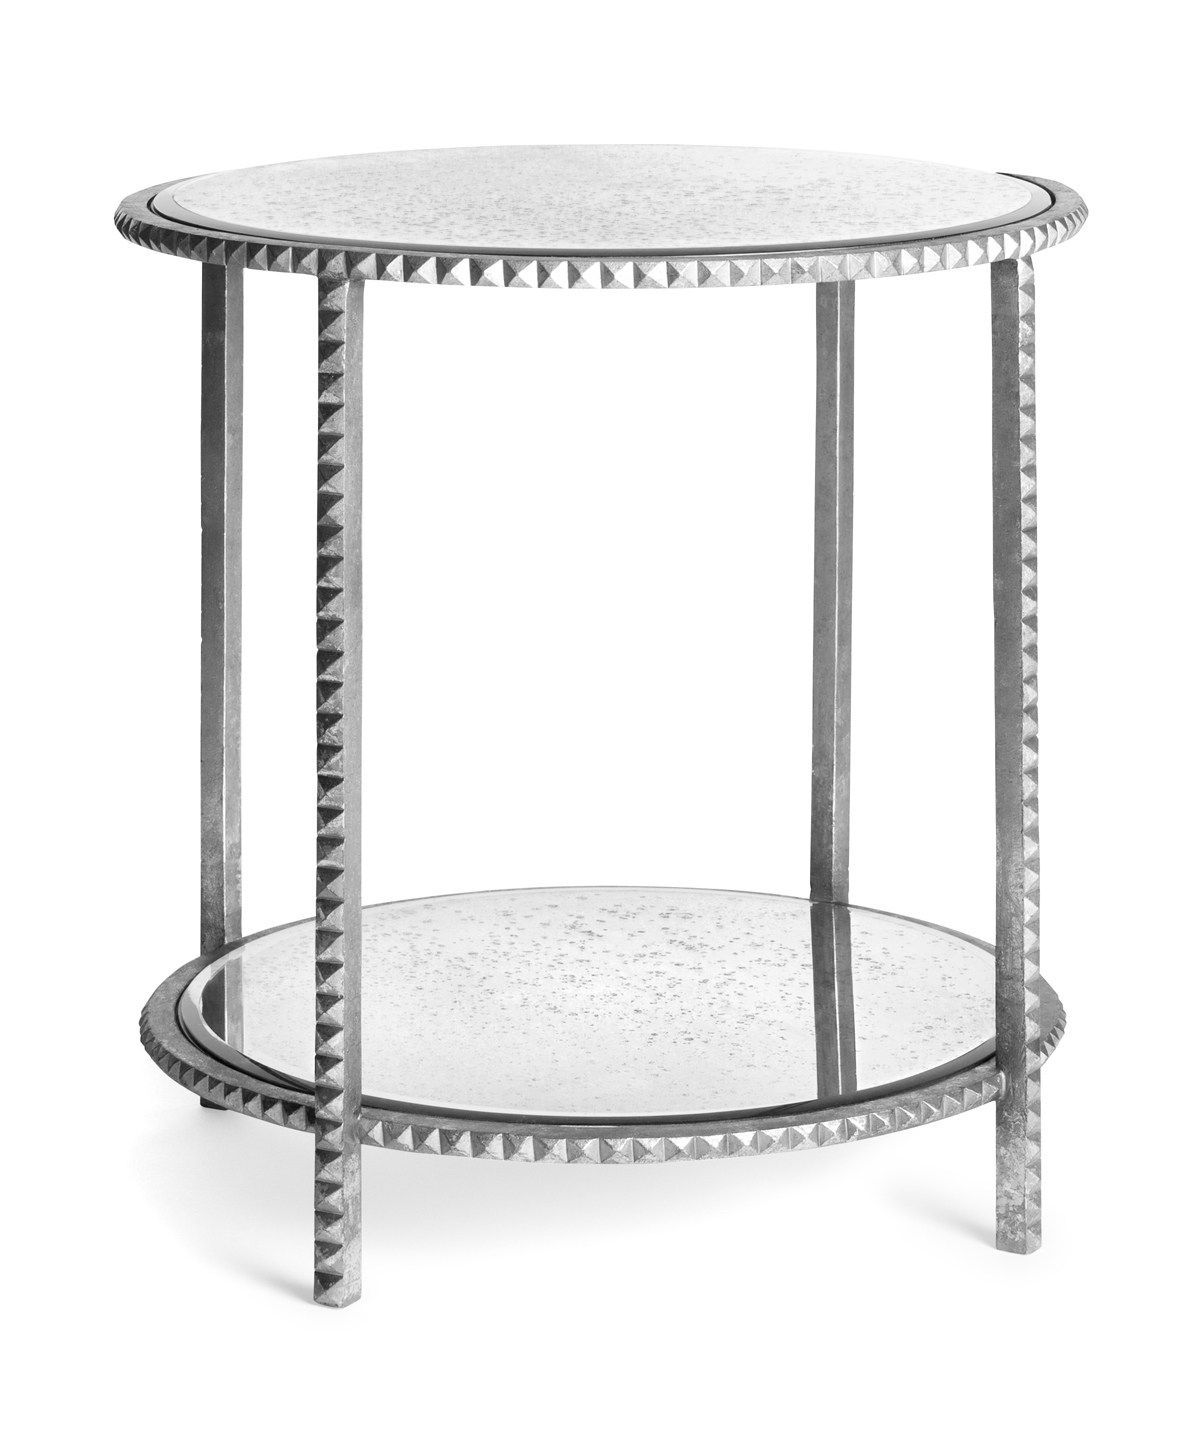 pin svz interior design napoli drive end tables table mirrored pyramid accent stud silver rock your room with this edgy beauty hand cast pottery barn bath country small kitchen